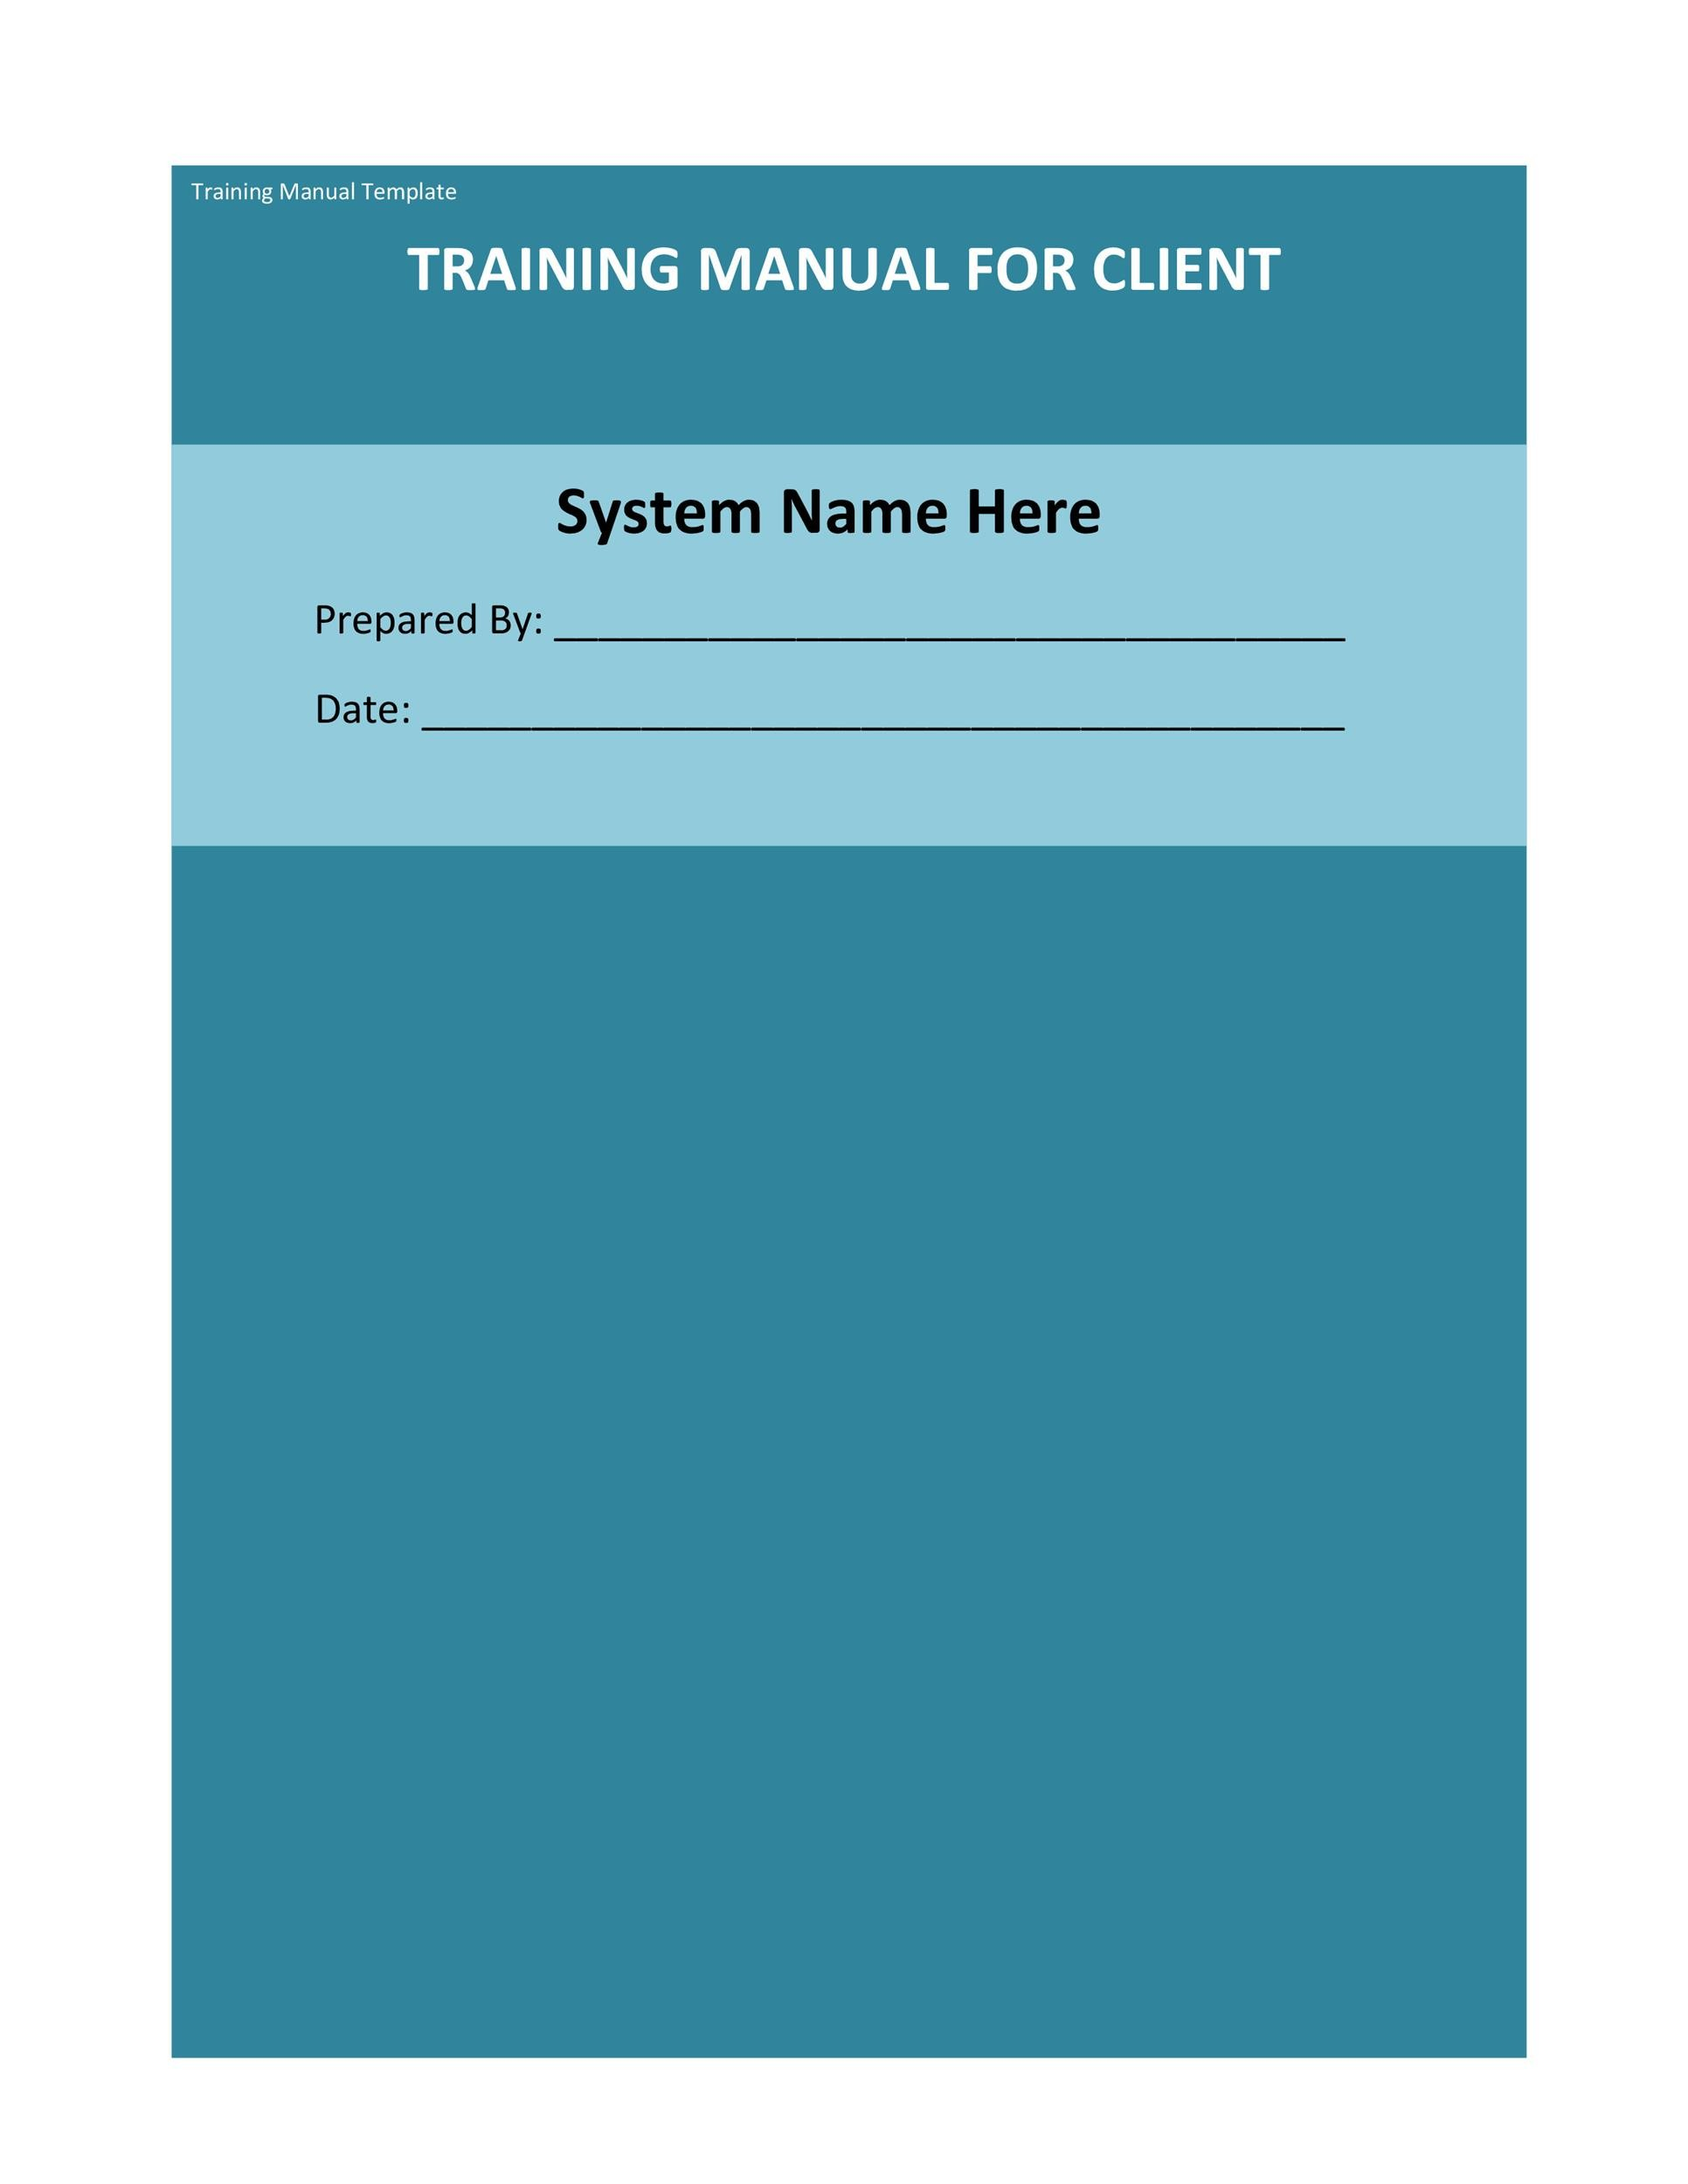 Free training manual template 06